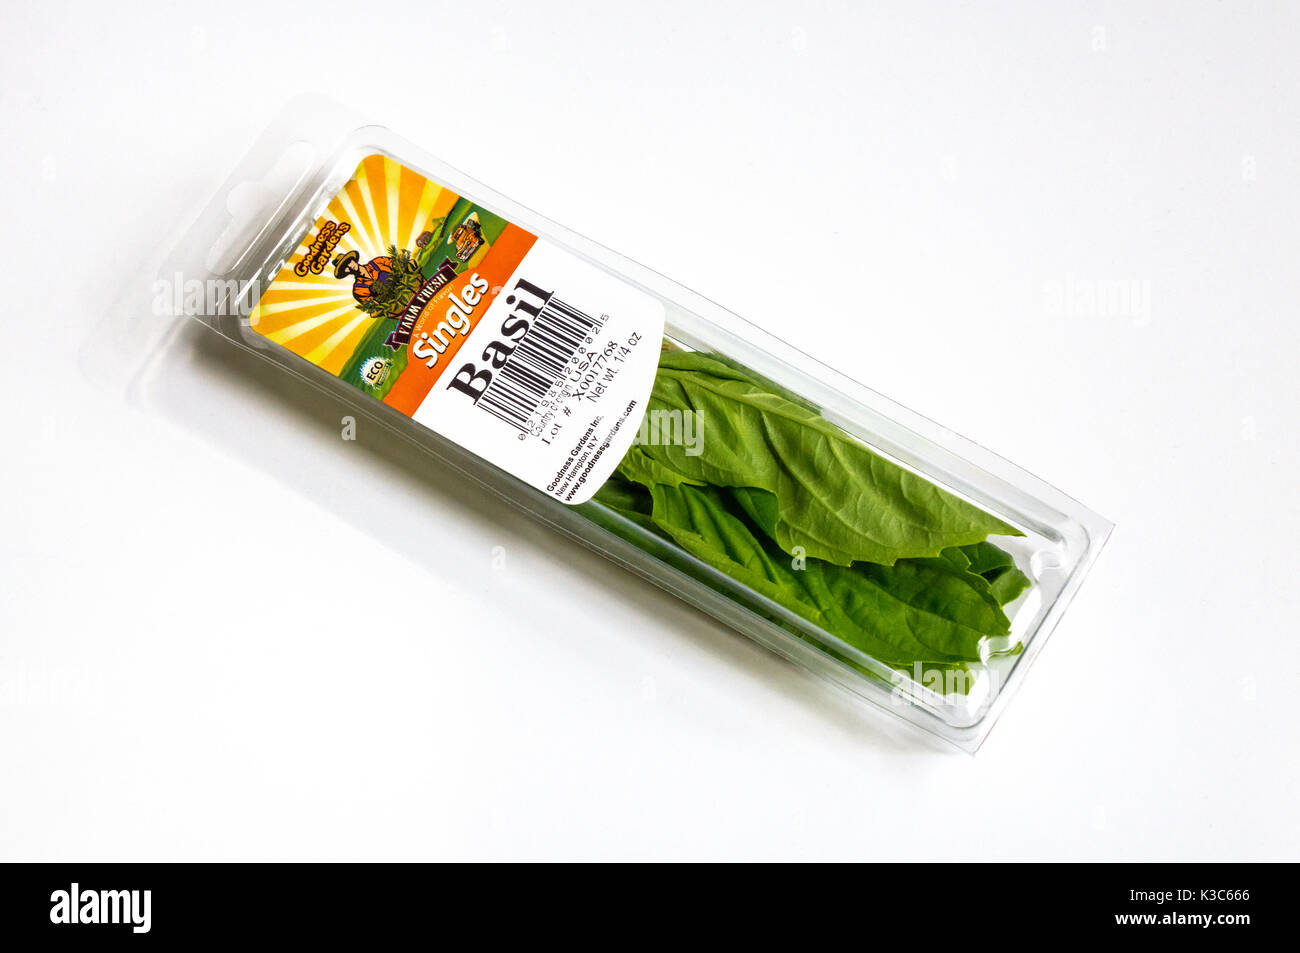 A single portion of basil from Goodness Gardens - Stock Image